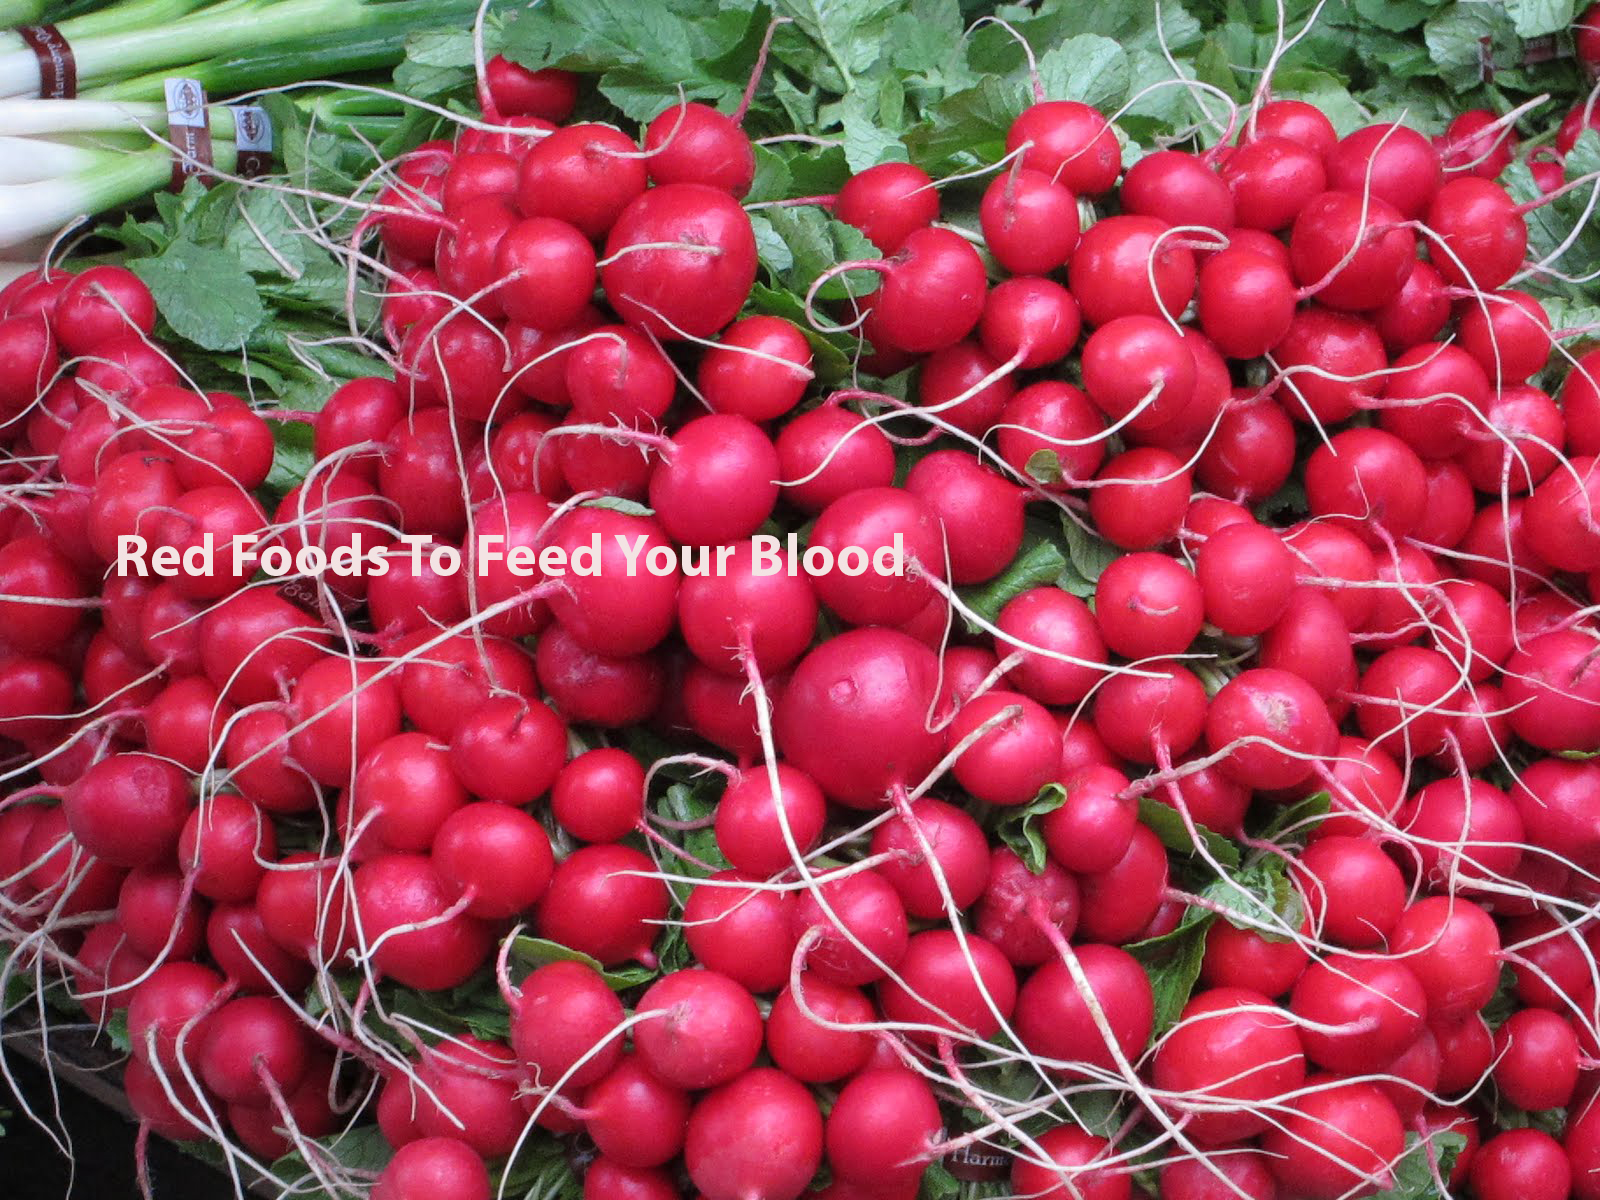 Red Foods To Feed Your Blood